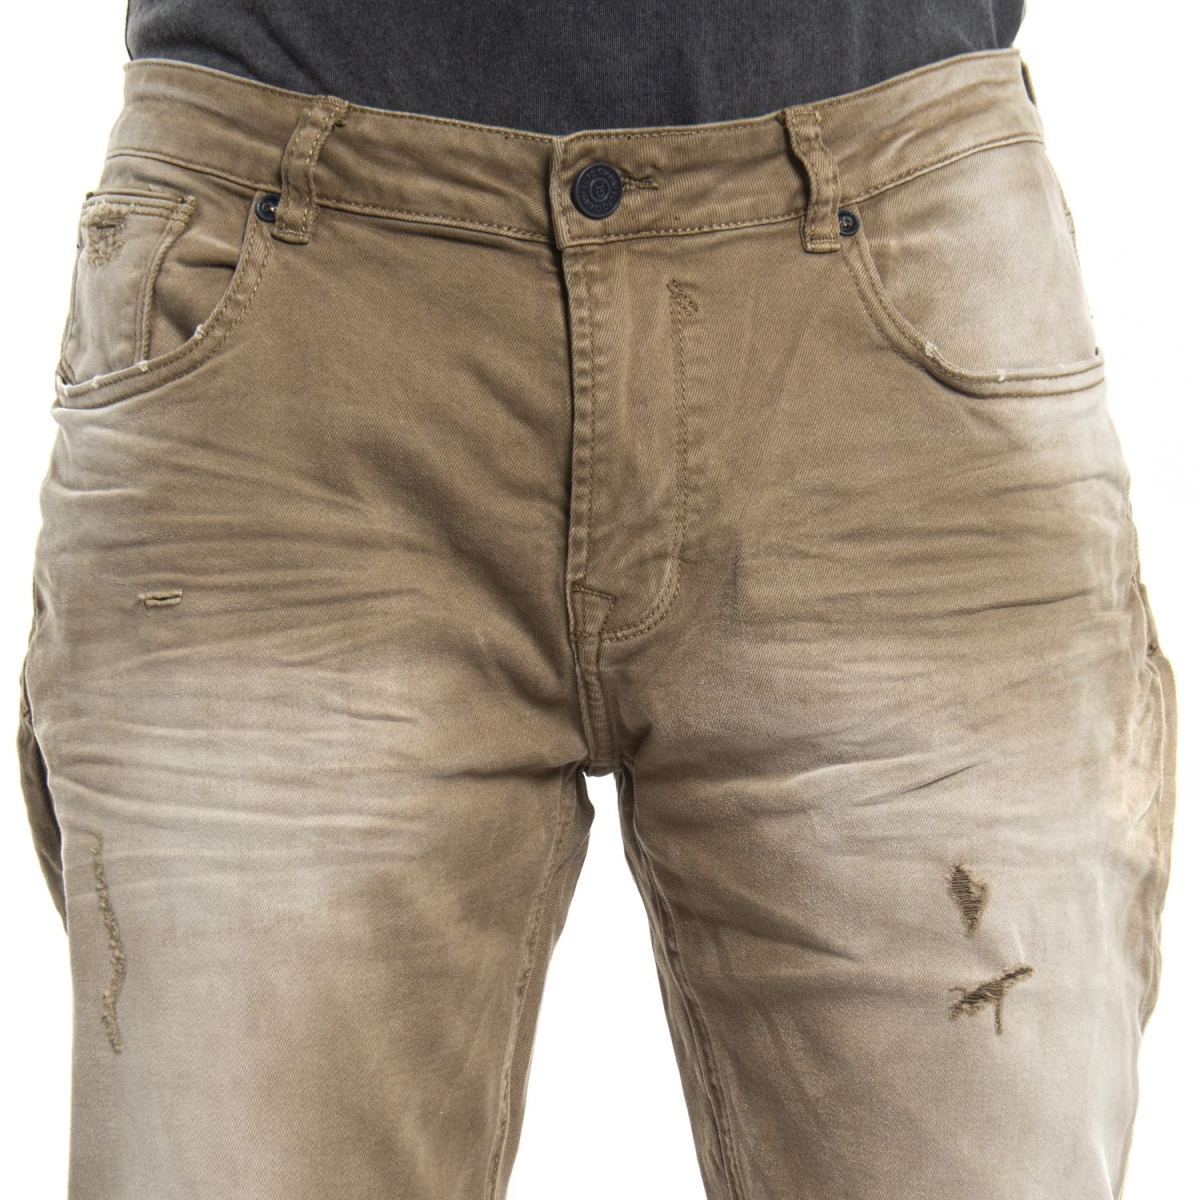 ropa Jeans hombre Jeans GL090F GIANNI LUPO Cafedelmar Shop